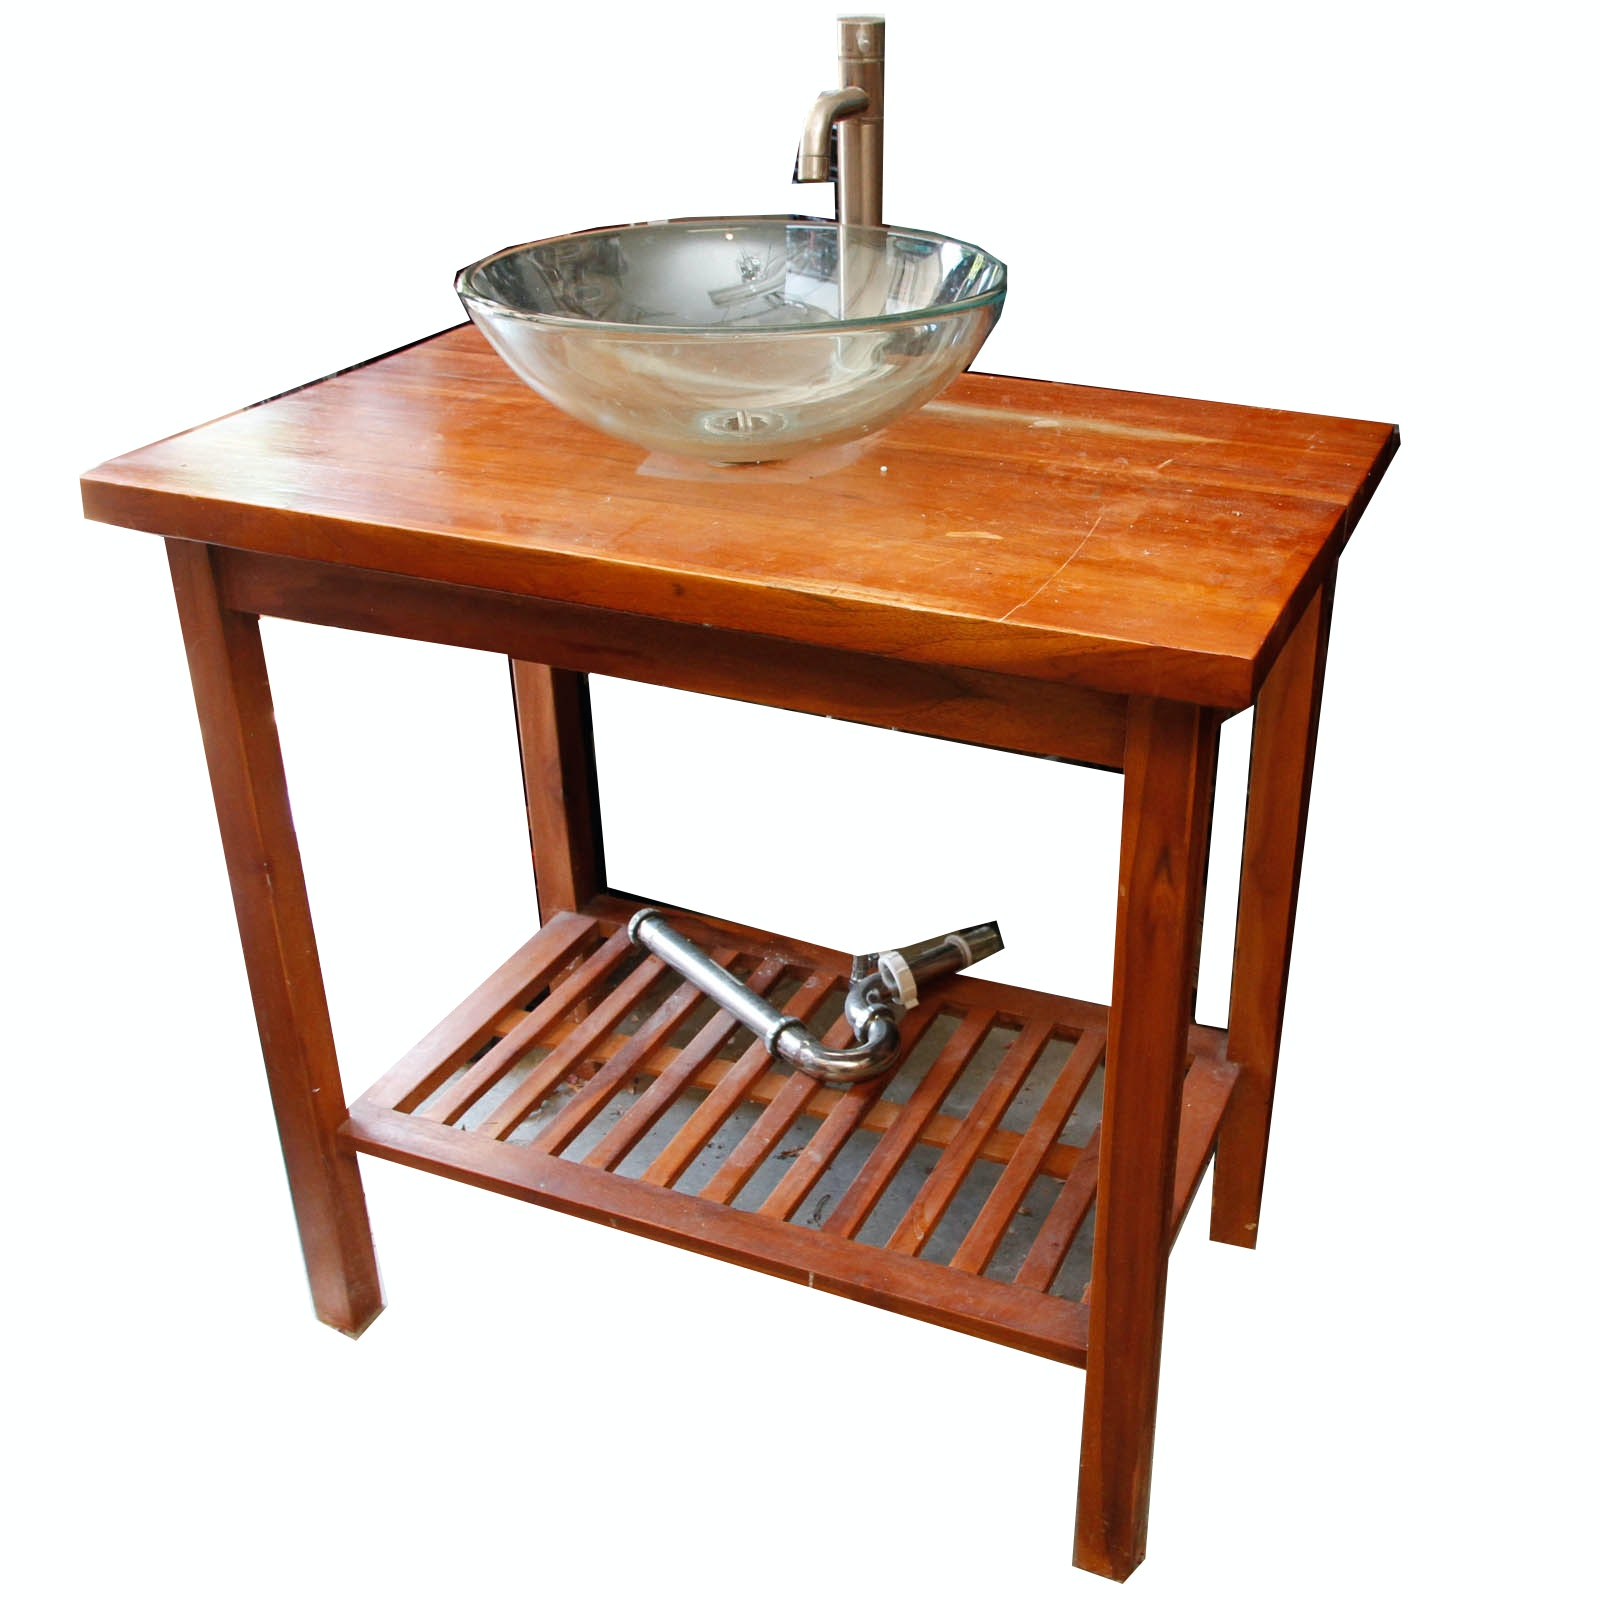 Beautiful Teak Bathroom Vanity With Glass Vessel Sink